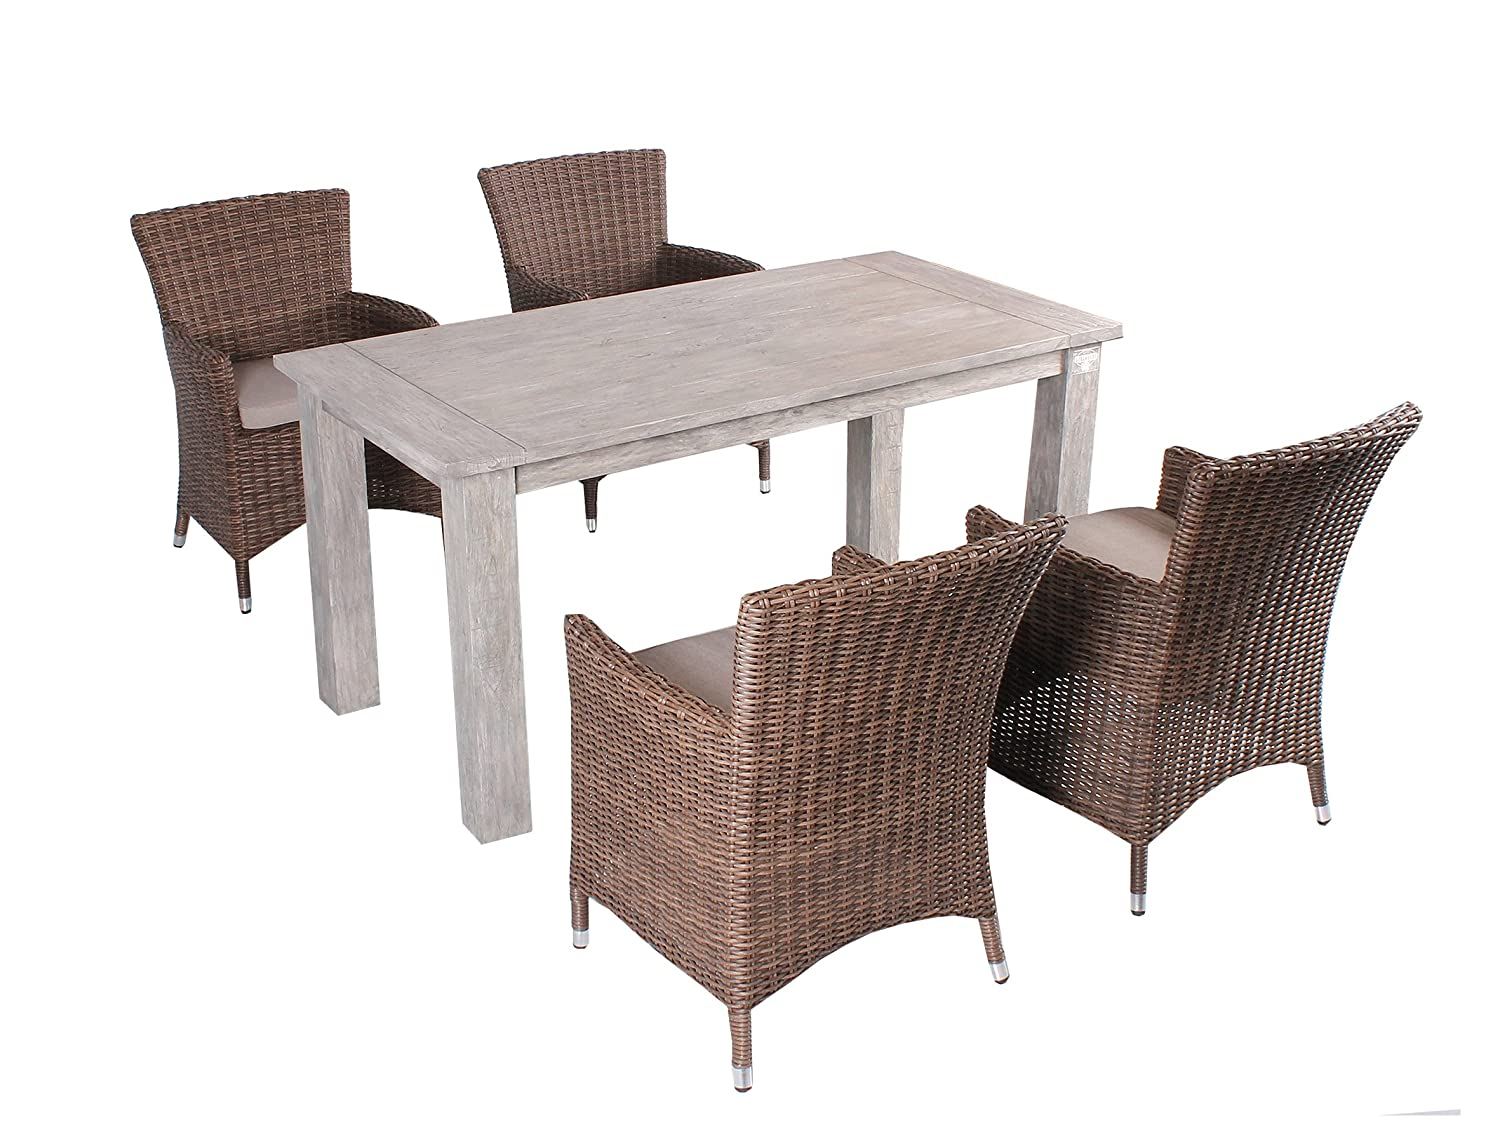 strandgut07 5tlg essgruppe sitzgruppe 160 x 80 cm teakholz grau finish hochwertiges polyrattan. Black Bedroom Furniture Sets. Home Design Ideas